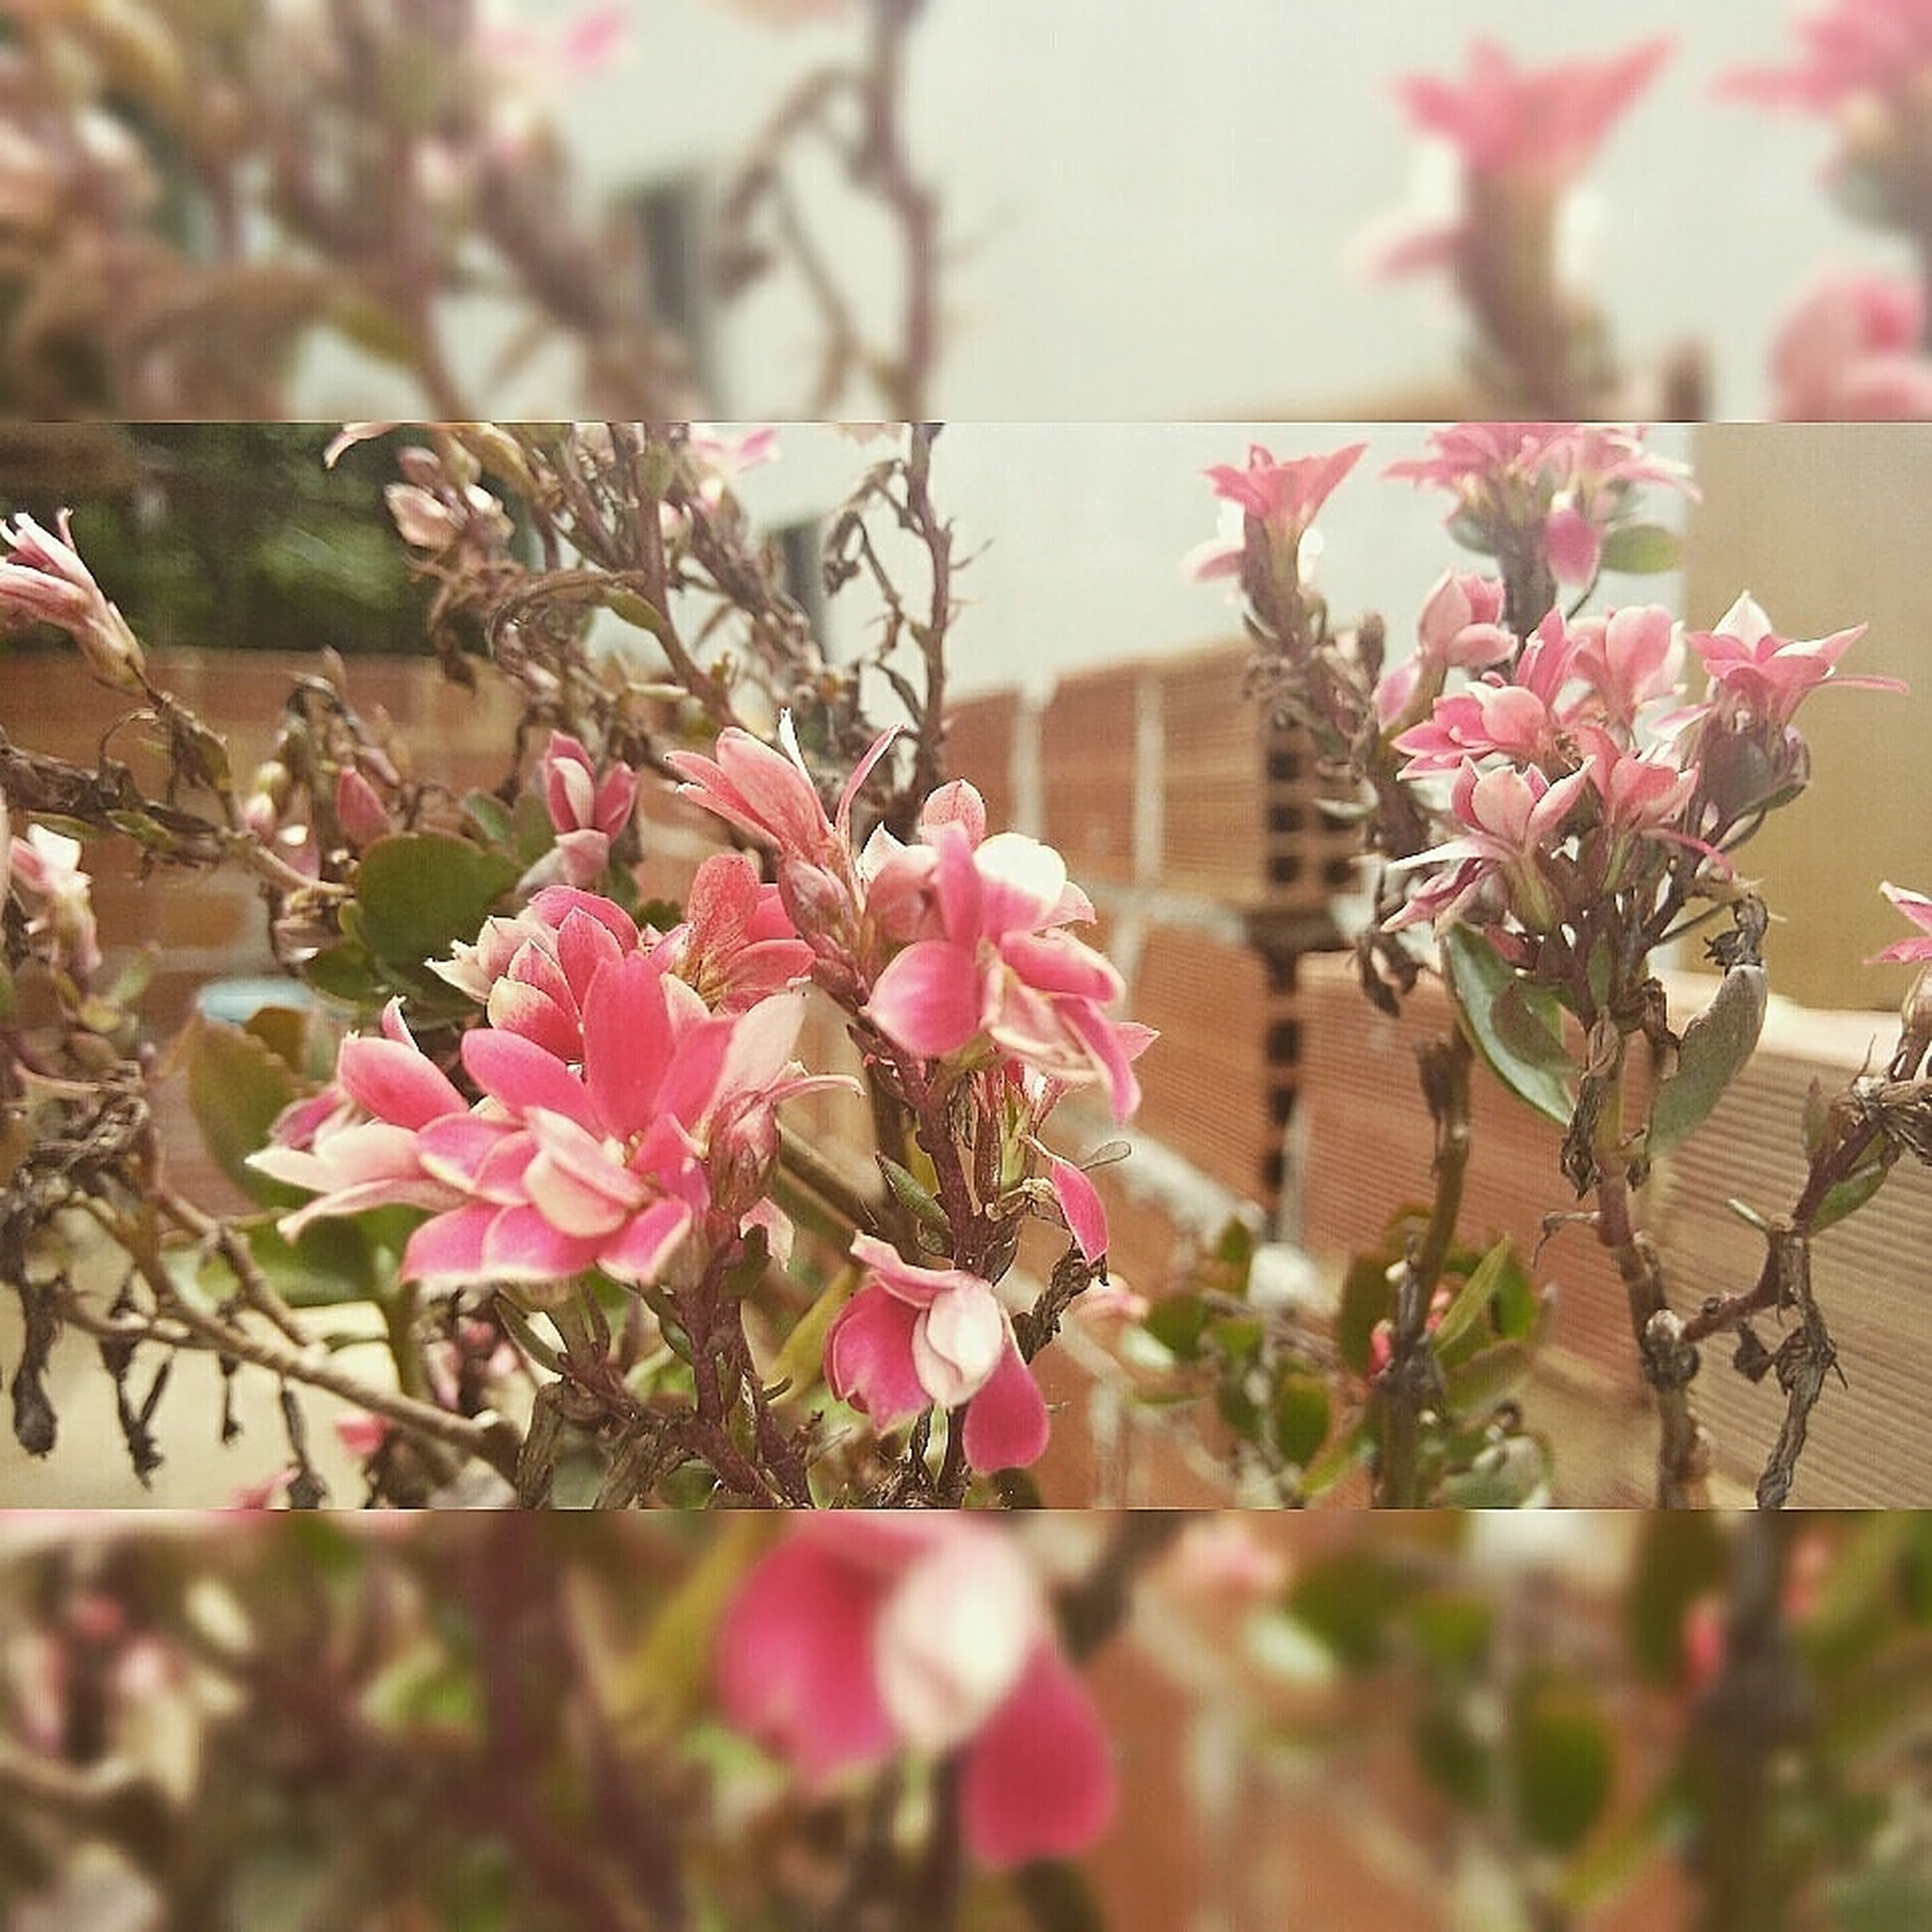 flower, freshness, fragility, growth, petal, pink color, beauty in nature, nature, focus on foreground, blooming, plant, close-up, blossom, in bloom, flower head, branch, stem, day, selective focus, leaf